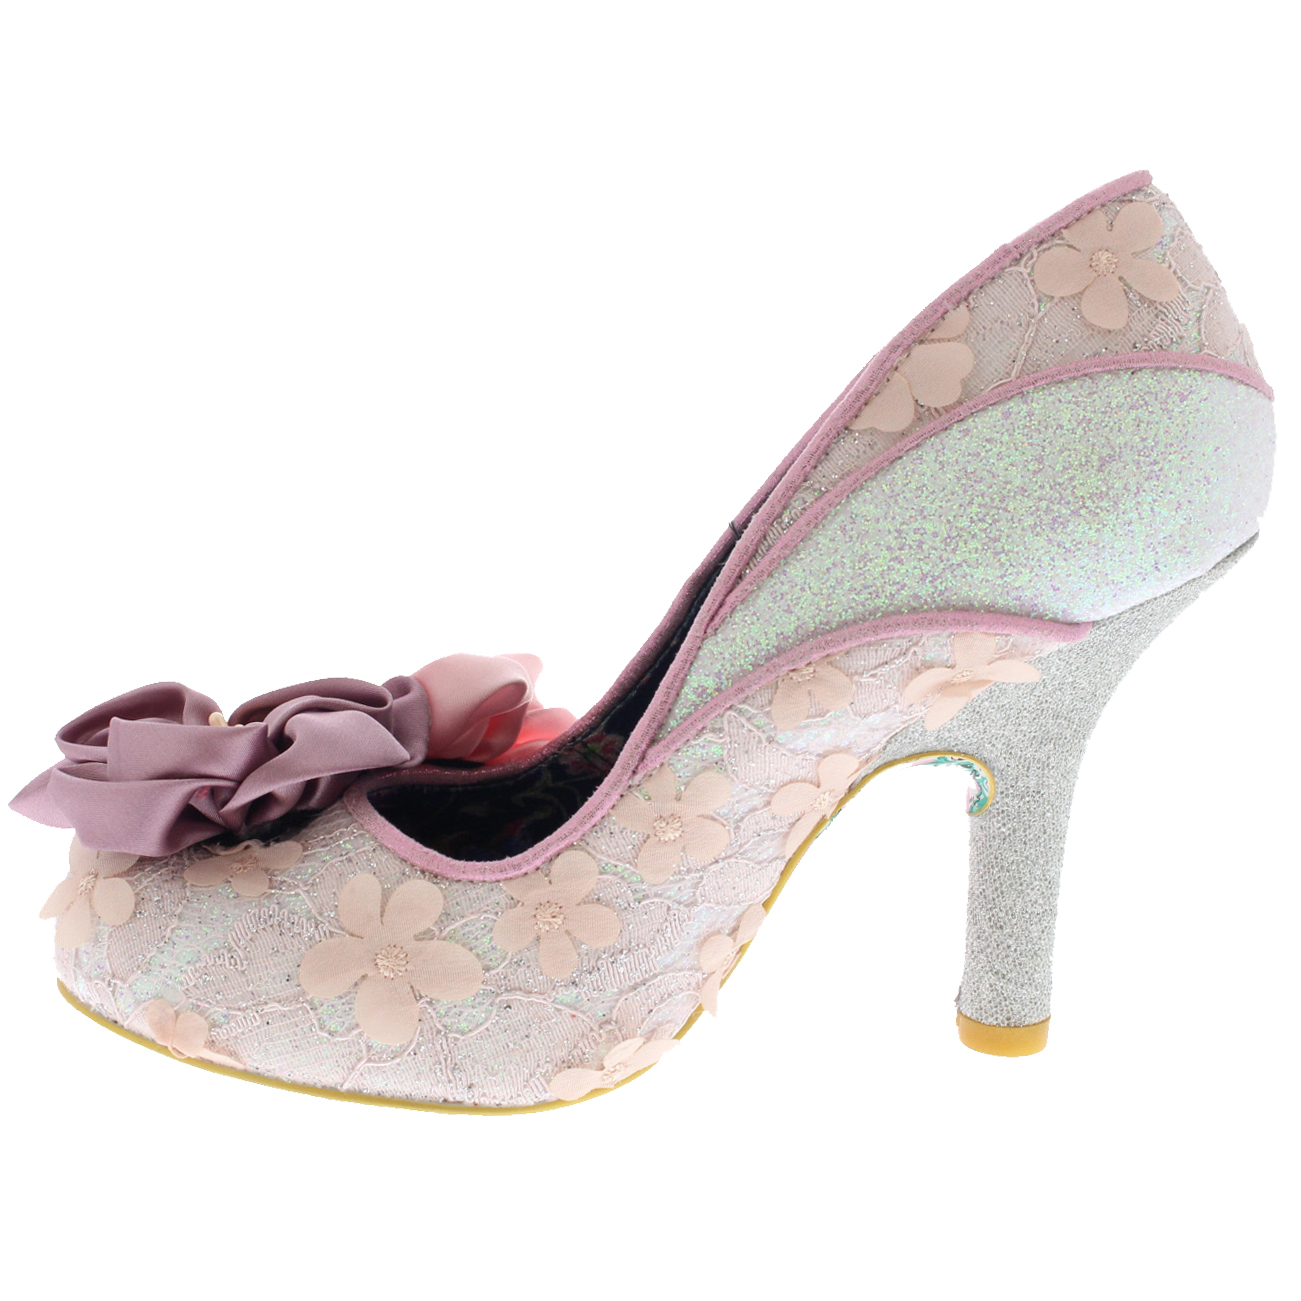 Ladies Irregular Choice Peach Melba Bridal Evening Court Shoes Heels All Sizes